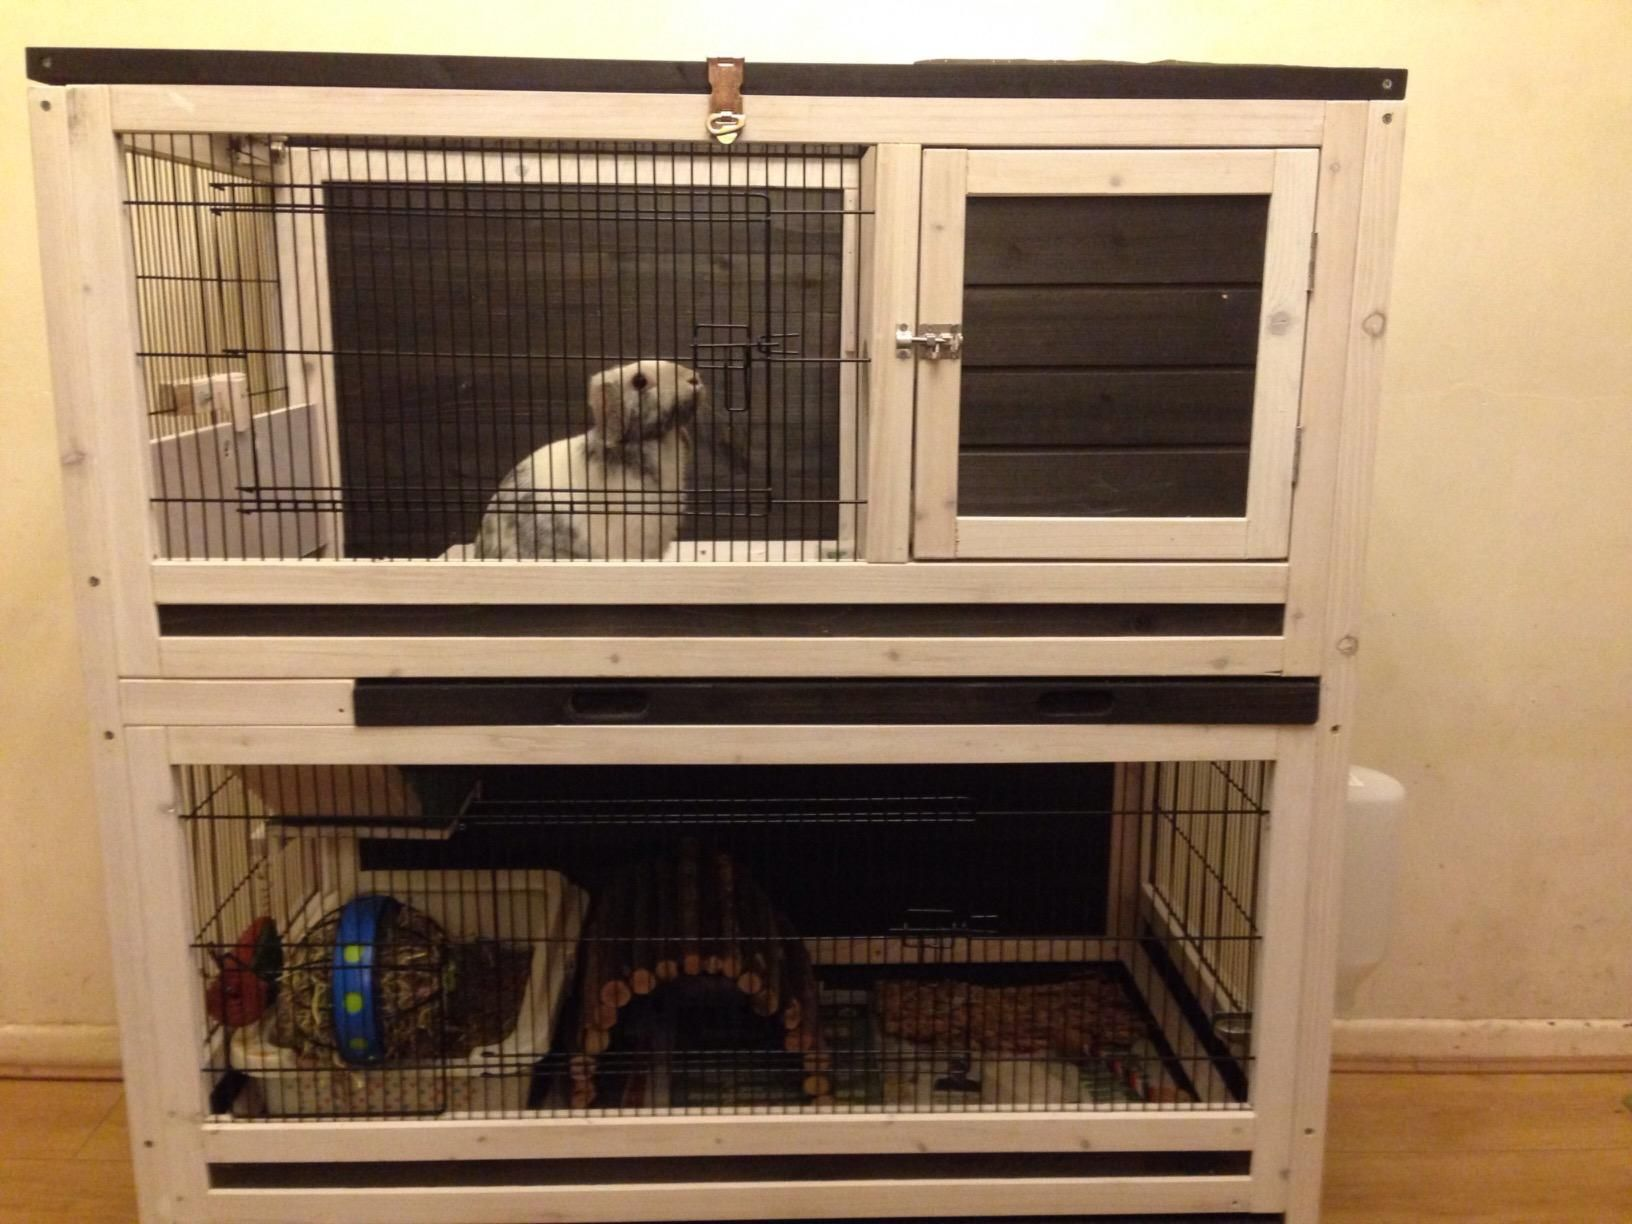 Small pet cage indoor lounge 2 storey wooden rabbits or for 2 rabbit hutch